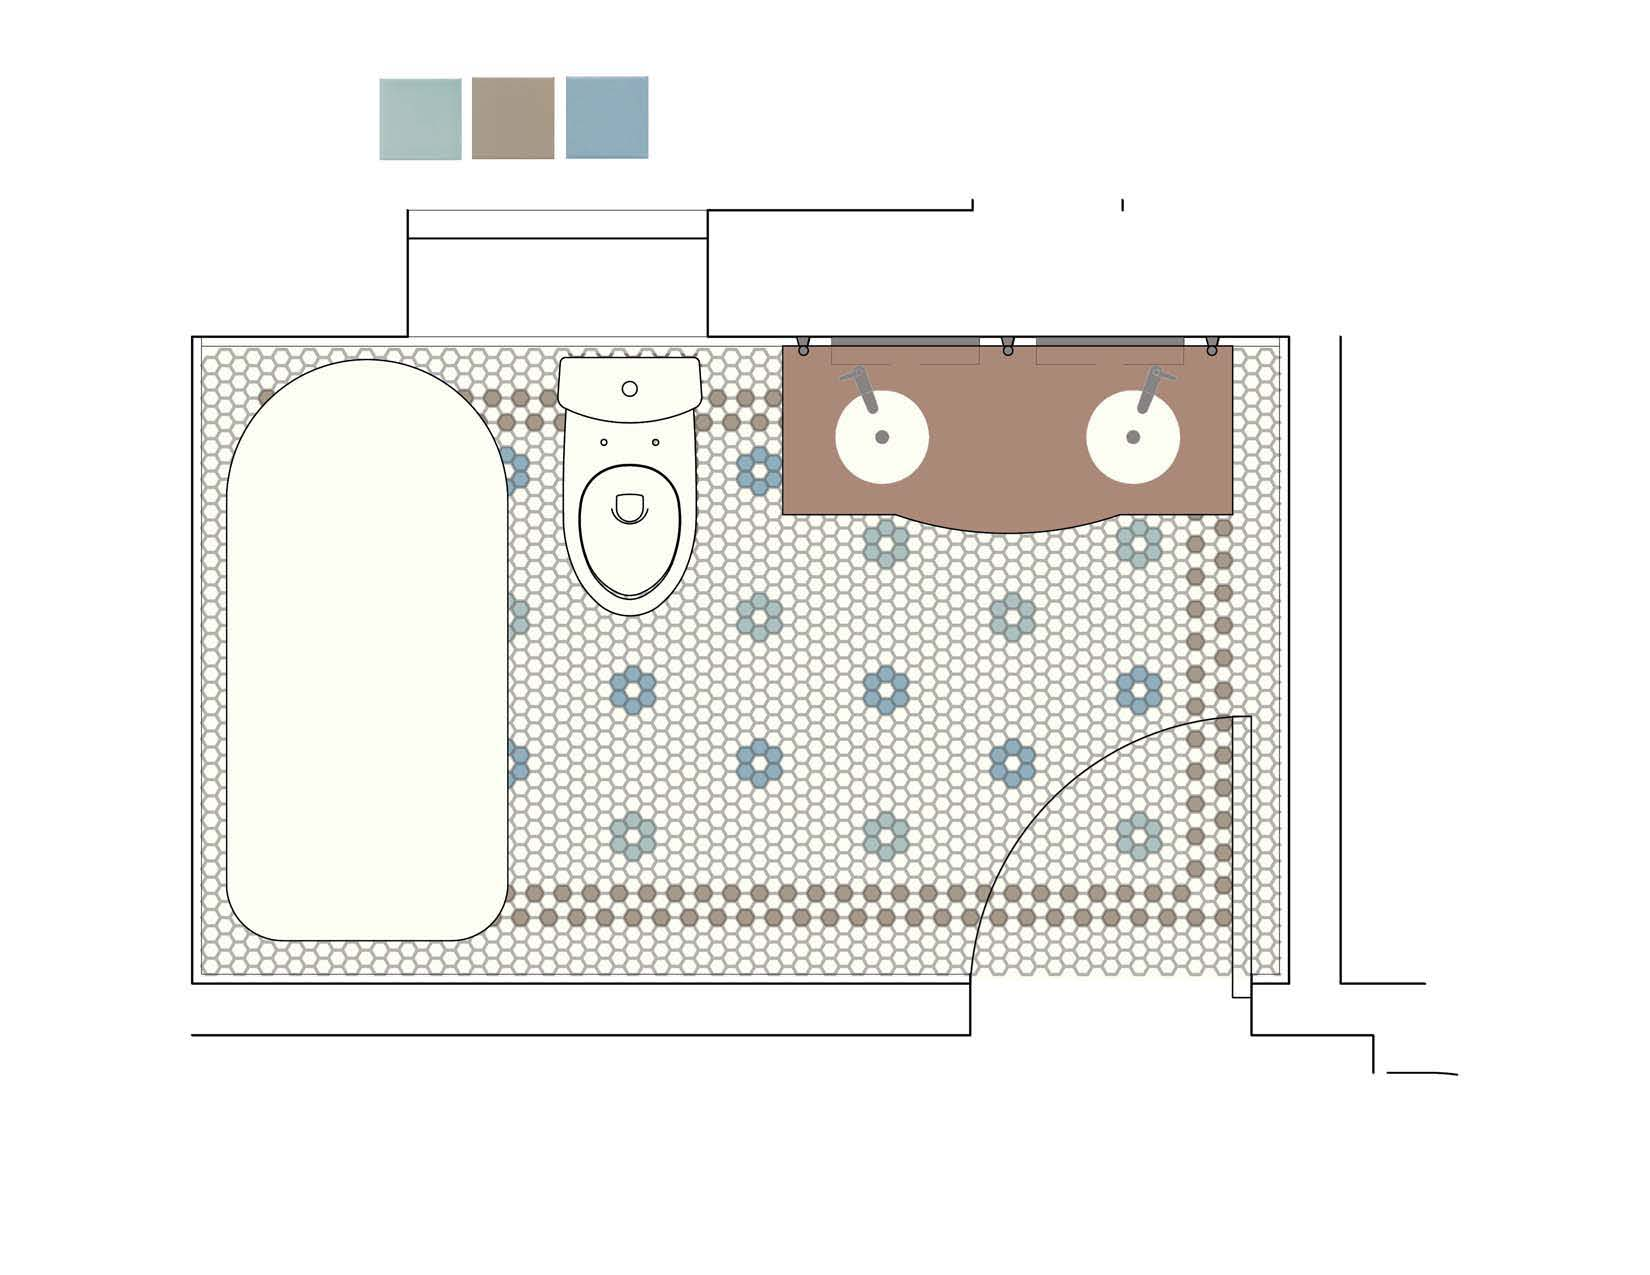 April 2012 bathroom floors Bathroom floor plans